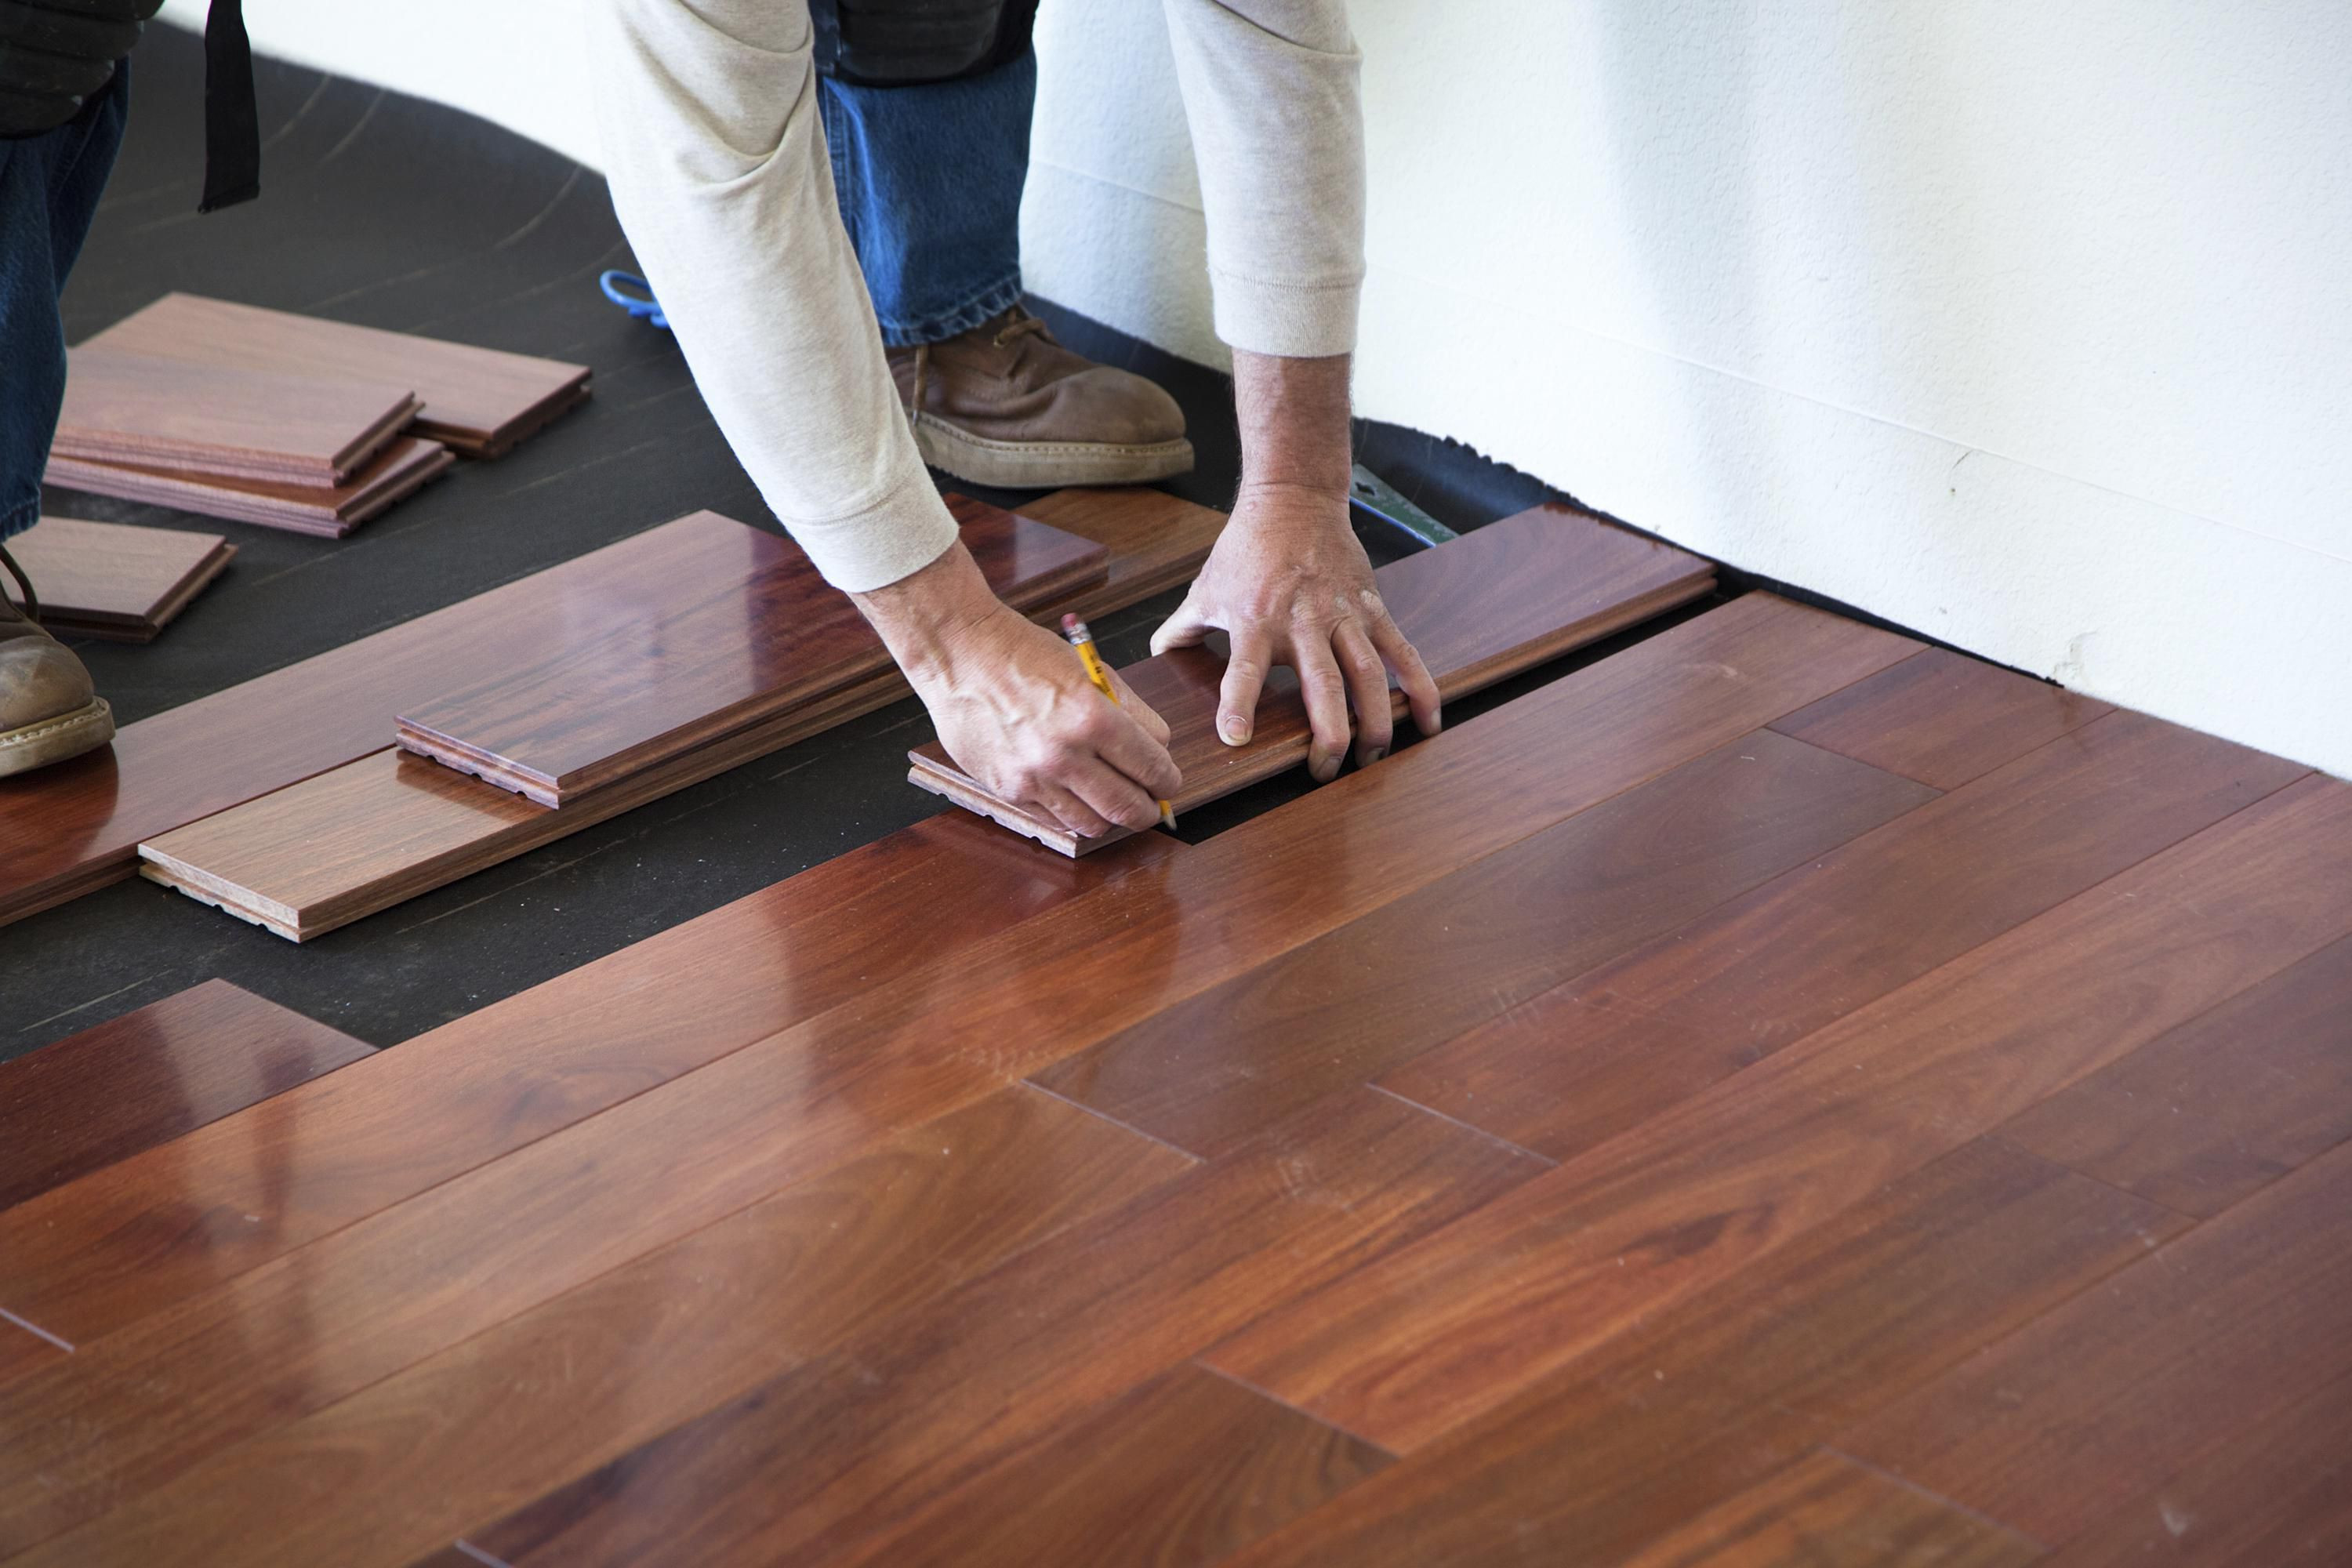 3 4 inch hardwood flooring prices of this is how much hardwood flooring to order in 170040982 56a49f213df78cf772834e21